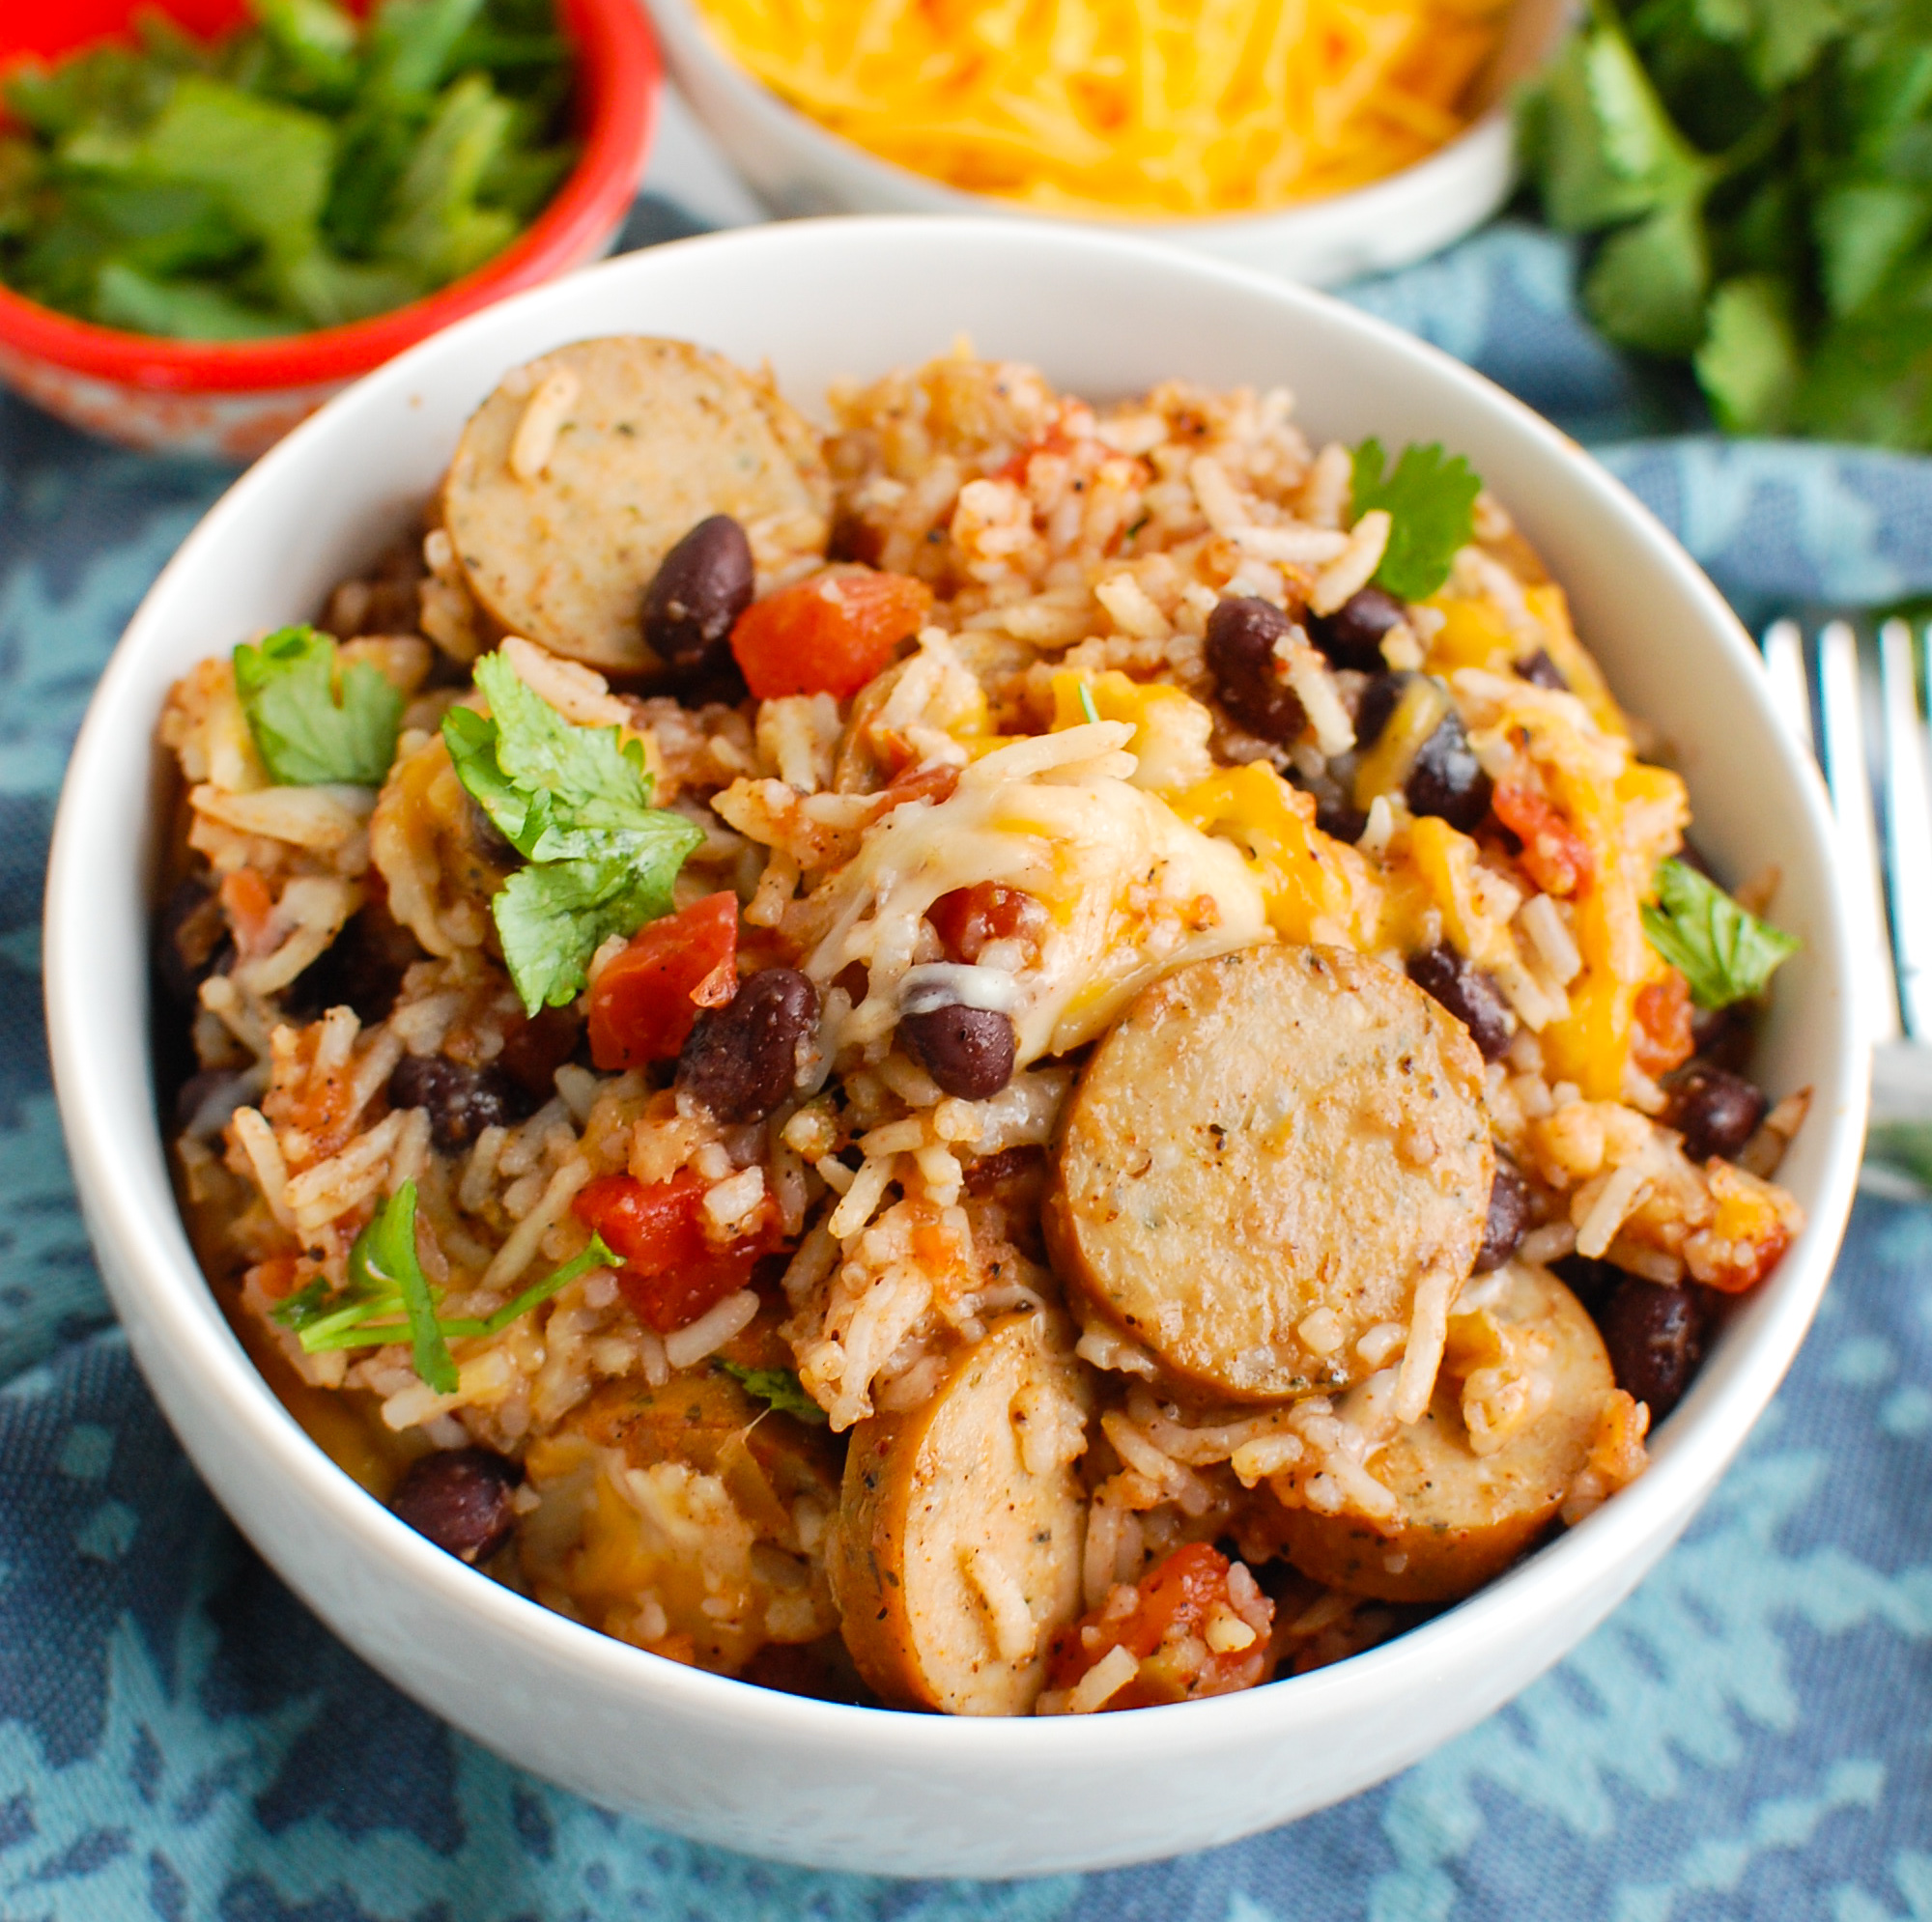 Sausage and Bean Casserole in a white bowl